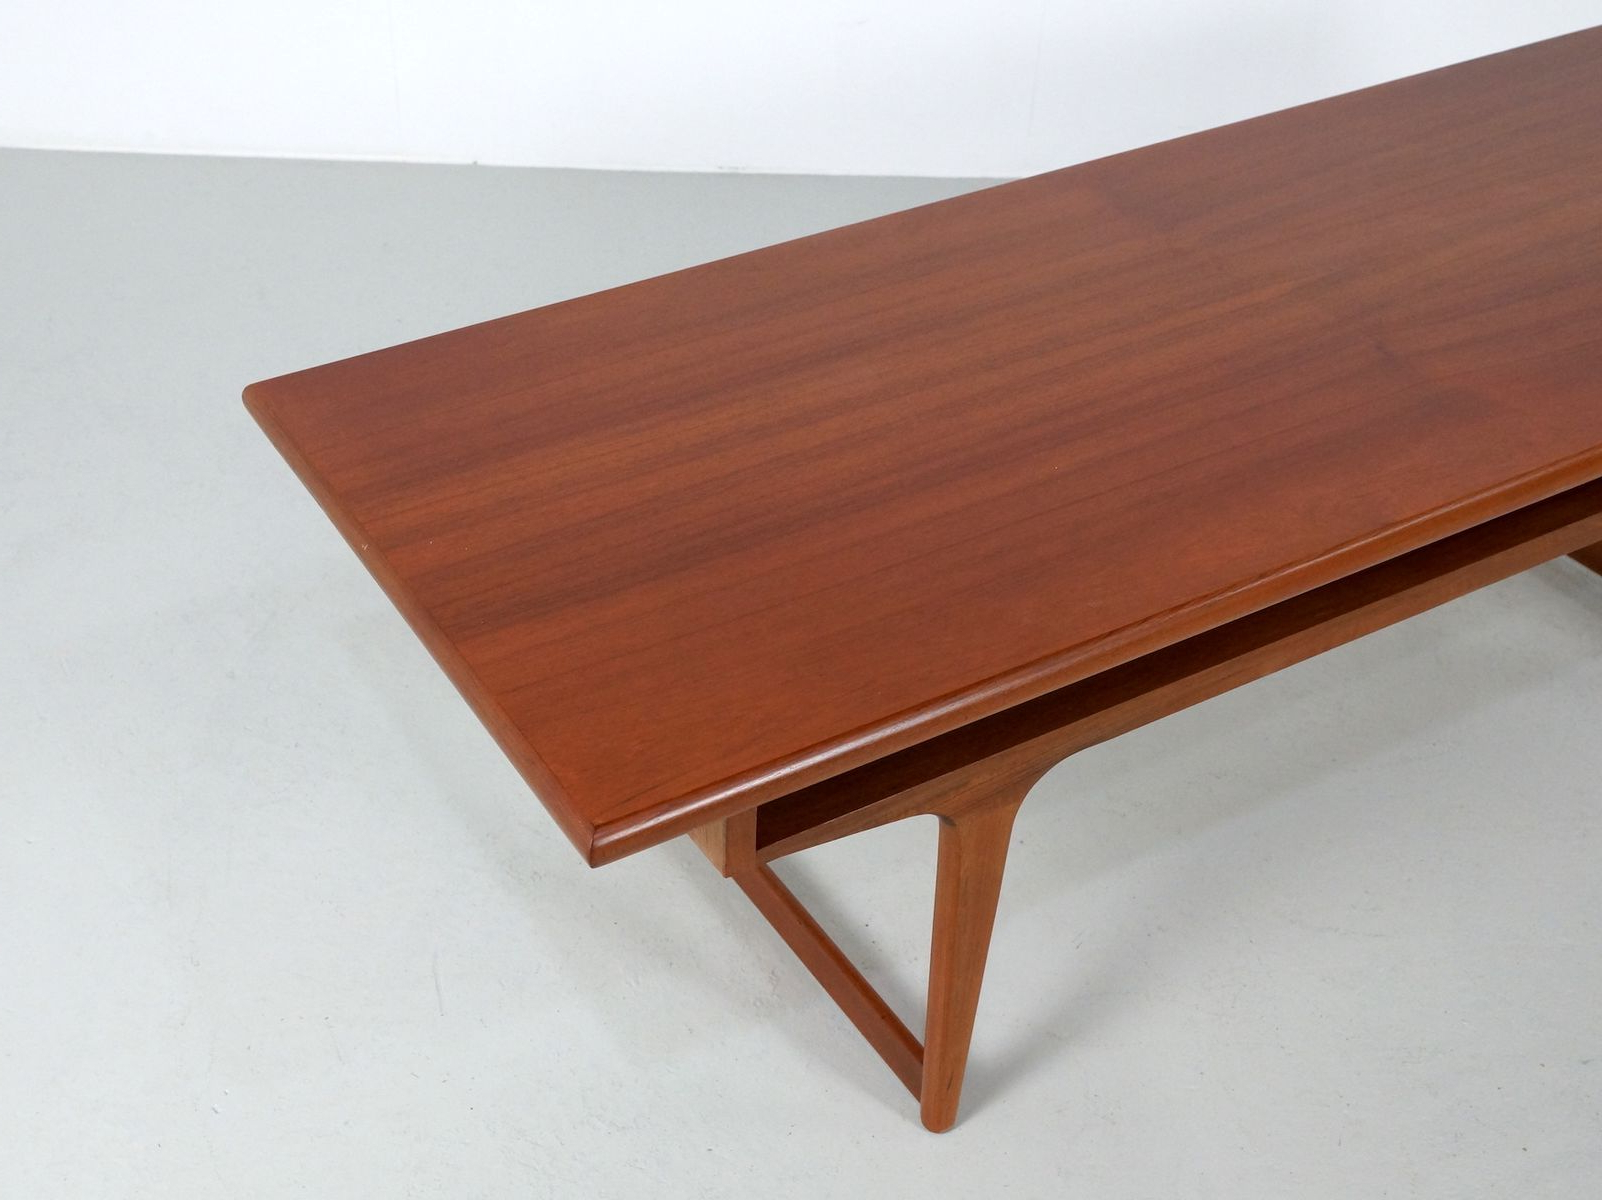 Well Known Large Teak Danish Coffee Table, 1960s For Sale At Pamono Within Large Teak Coffee Tables (View 19 of 20)